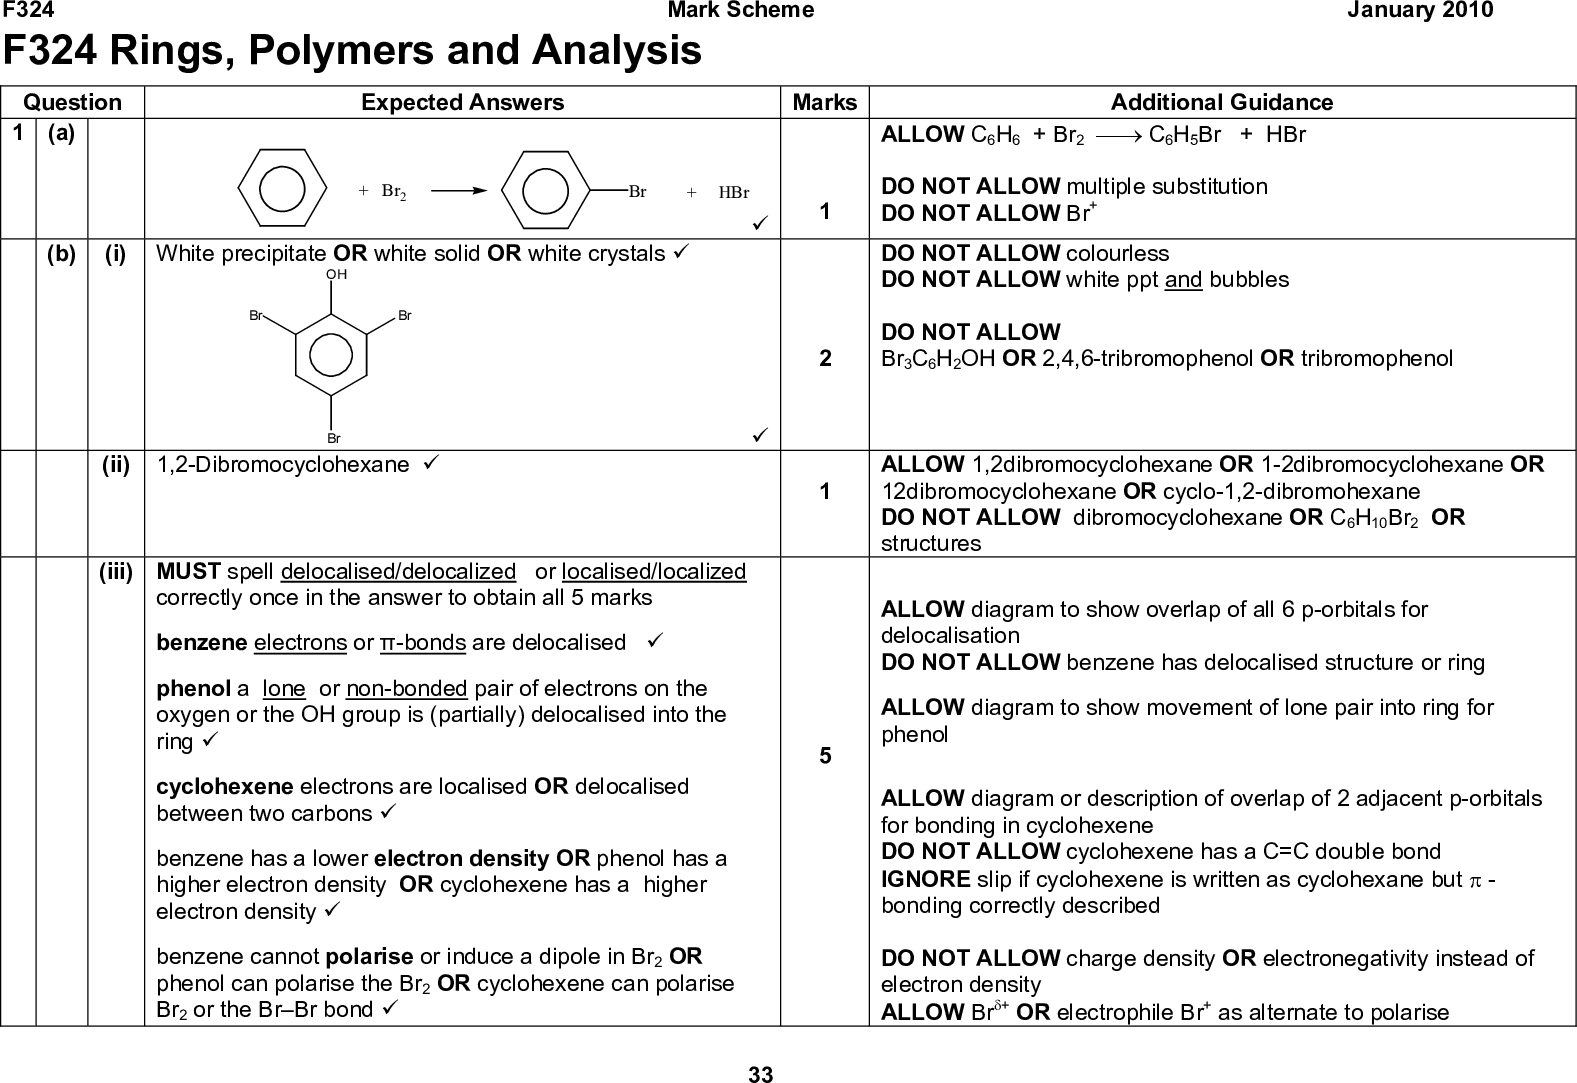 F324 F324 Rings, Polymers and Analysis Question 1 Expected Answers (a) Mark Scheme + Br2 Br + HBr (b) (i) White precipitate OR white solid OR white crystals (cid:57) OH Br Br January 2010 (cid:57) Marks 1 2 Additional Guidance ALLOW C6H6 + Br2 (cid:127)(cid:111) C6H5Br + HBr DO NOT ALLOW multiple substitution DO NOT ALLOW Br+ DO NOT ALLOW colourless DO NOT ALLOW white ppt and bubbles DO NOT ALLOW Br3C6H2OH OR 2,4,6-tribromophenol OR tribromophenol (ii) 1,2-Dibromocyclohexane (cid:57) Br (cid:57) (iii) MUST spell delocalised/delocalized or localised/localized correctly once in the answer to obtain all 5 marks benzene electrons or -bonds are delocalised (cid:57) phenol a lone or non-bonded pair of electrons on the oxygen or the OH group is (partially) delocalised into the ring (cid:57) cyclohexene electrons are localised OR delocalised between two carbons (cid:57) benzene has a lower electron density OR phenol has a higher electron density OR cyclohexene has a higher electron density (cid:57) benzene cannot polarise or induce a dipole in Br2 OR phenol can polarise the Br2 OR cyclohexene can polarise Br2 or the BrBr bond (cid:57) 33 ALLOW 1,2dibromocyclohexane OR 1-2dibromocyclohexane OR 12dibromocyclohexane OR cyclo-1,2-dibromohexane DO NOT ALLOW dibromocyclohexane OR C6H10Br2 OR structures ALLOW diagram to show overlap of all 6 p-orbitals for delocalisation DO NOT ALLOW benzene has delocalised structure or ring ALLOW diagram to show movement of lone pair into ring for phenol ALLOW diagram or description of overlap of 2 adjacent p-orbitals for bonding in cyclohexene DO NOT ALLOW cyclohexene has a C=C double bond IGNORE slip if cyclohexene is written as cyclohexane but (cid:83) - bonding correctly described DO NOT ALLOW charge density OR electronegativity instead of electron density ALLOW Br(cid:71)+ OR electrophile Br+ as alternate to polarise<br />  F324 (c) H3C H3C Mark Scheme 5 NH2 (cid:57) +N (cid:57)(cid:57) ALLOW ECF (cid:57)(cid:57) on incorrect amine HNO2 + HCl and temp < 10 oC OR NaNO2 + HCl and temp < 10 oC (cid:57) alkaline AND phenol (if temperature stated must be below 10 oC) (cid:57) Total 34 ALLOW H3C January 2010 IGNORE Cl- ion DO NOT ALLOW if ring is connected to the N triple bond in the diazonium or if diazonium has a negative charge ALLOW one mark for correct displayed diazonium if alkyl group is not shown ALLOW ALLOW H3C N+ H3C +N2 for both marks for one mark ALLOW ALLOW N H3C H3C N+ N+ for one mark for one mark ALLOW NaOH OR KOH & C6H5OH OR phenoxide ion OR C6H5O ALLOW reagents and conditions from the equations 14<br />